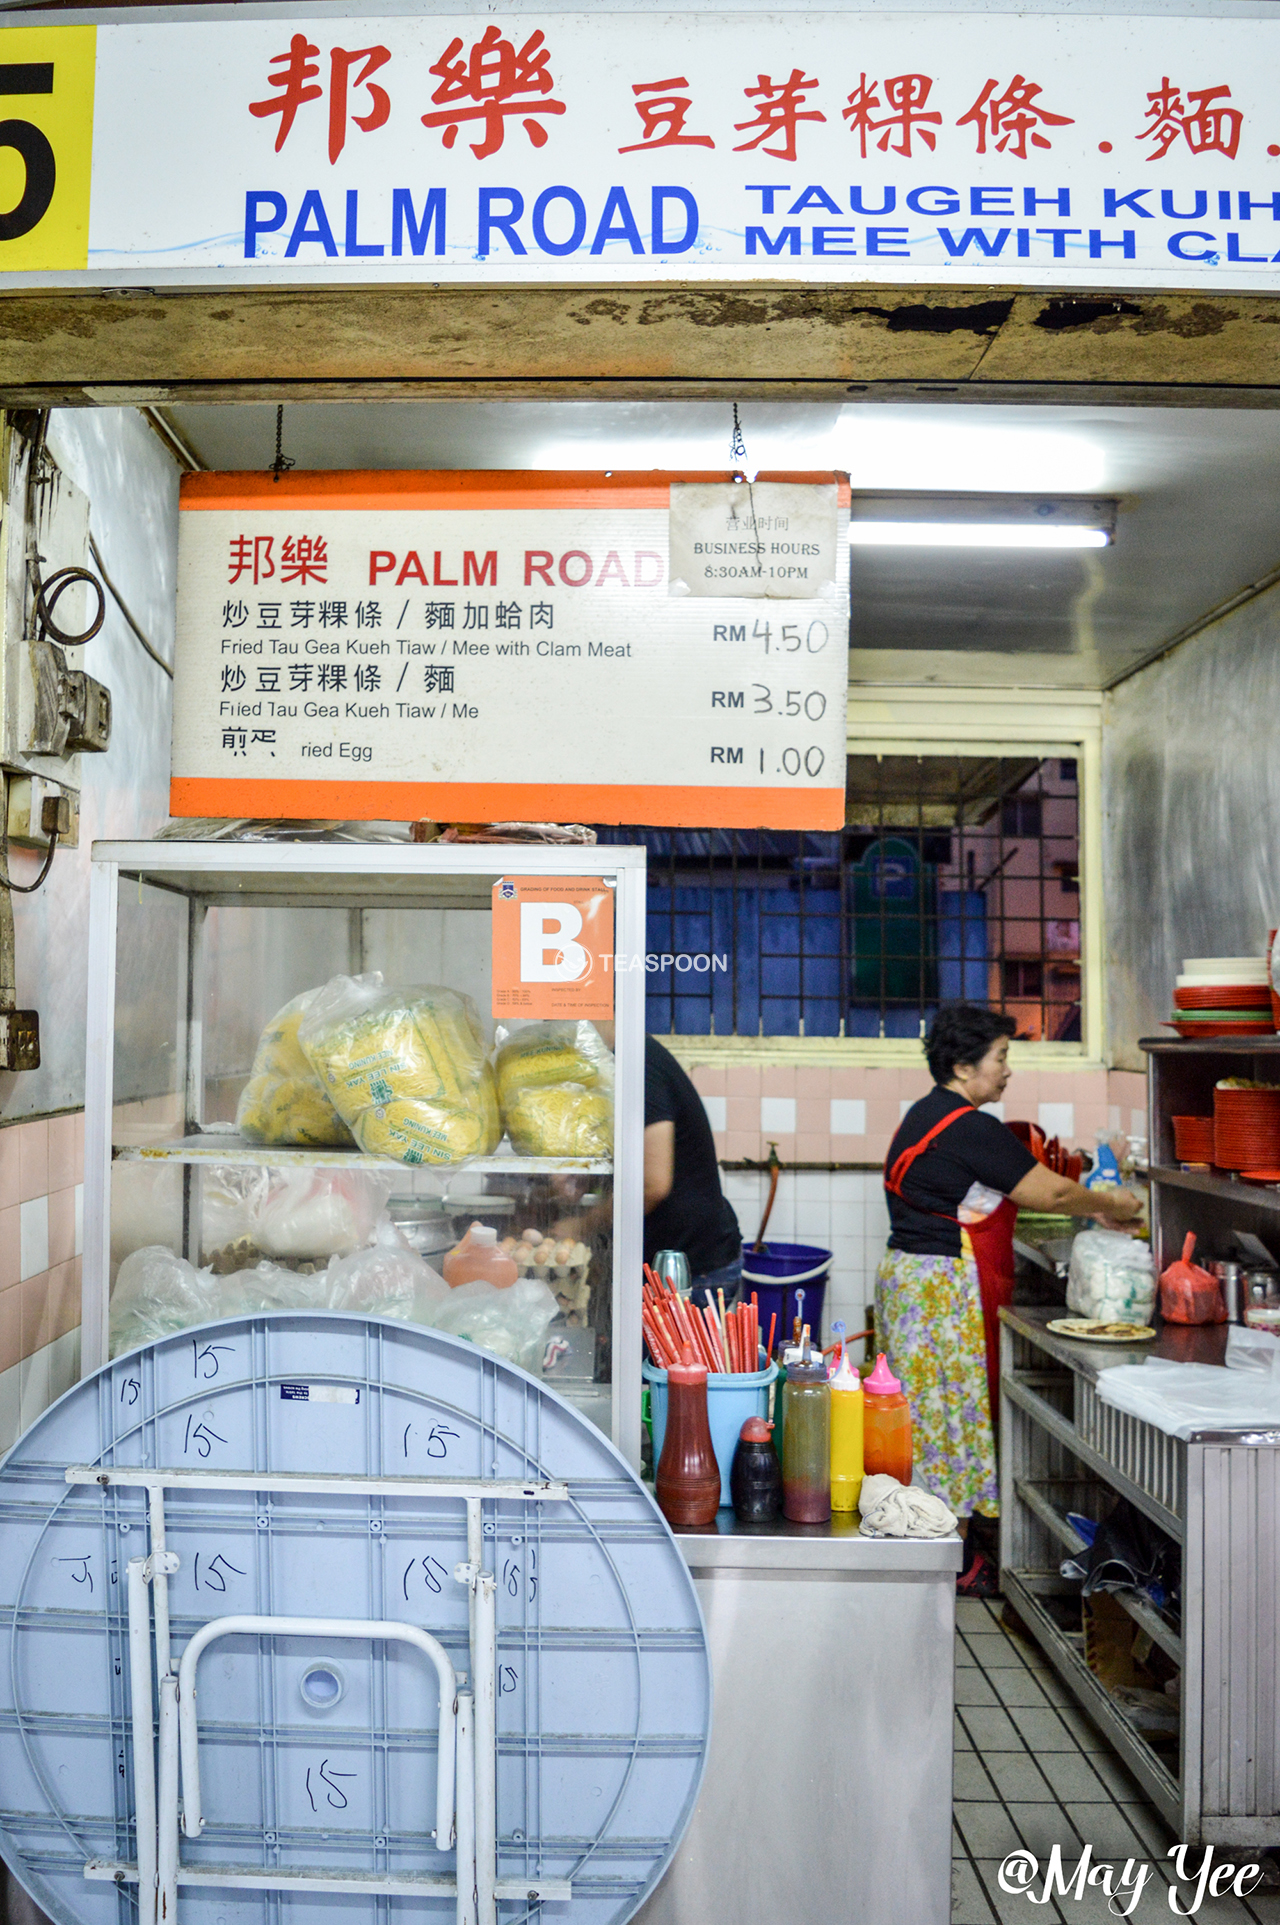 DINNER Hui Sing Hawker Centre PALM ROAD TAUGEH KUEH TIEW STALL (2)